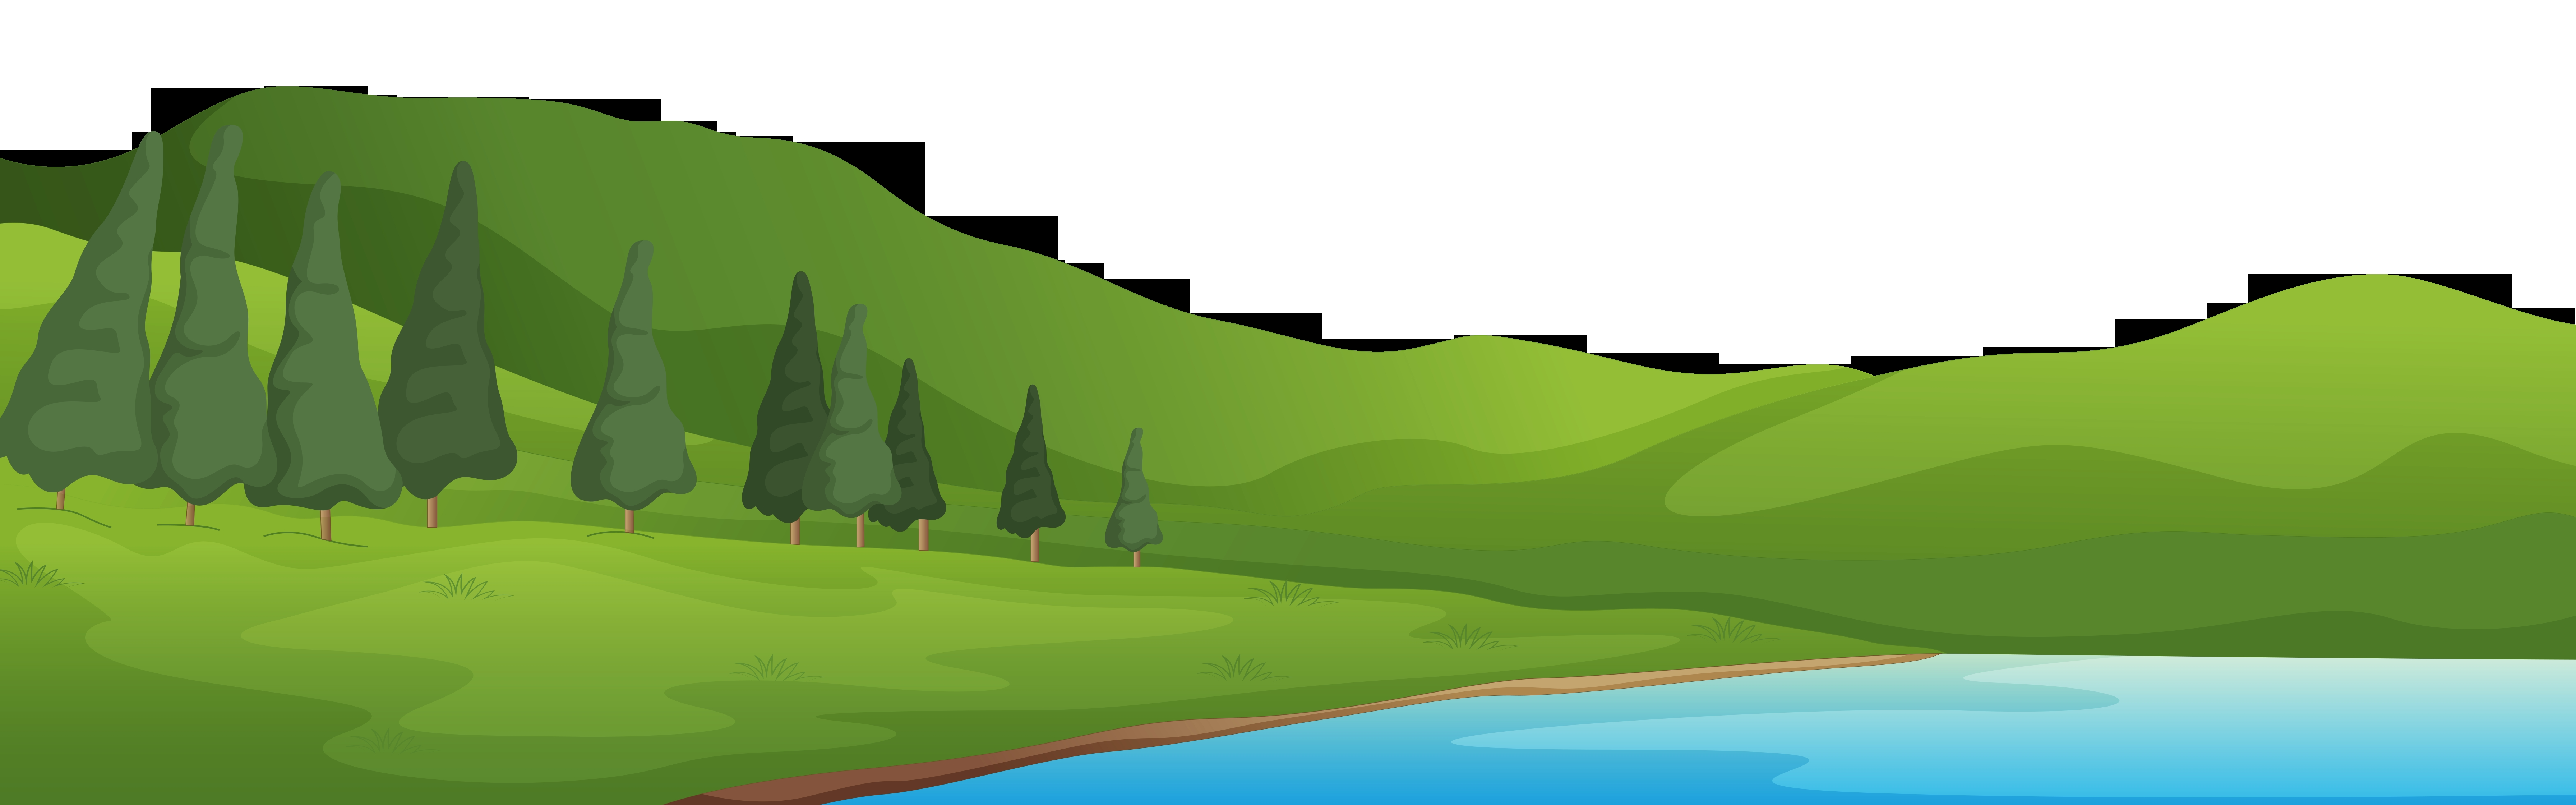 Mountains and hills clipart transparent download Mountain clipart hill - 151 transparent clip arts, images ... transparent download